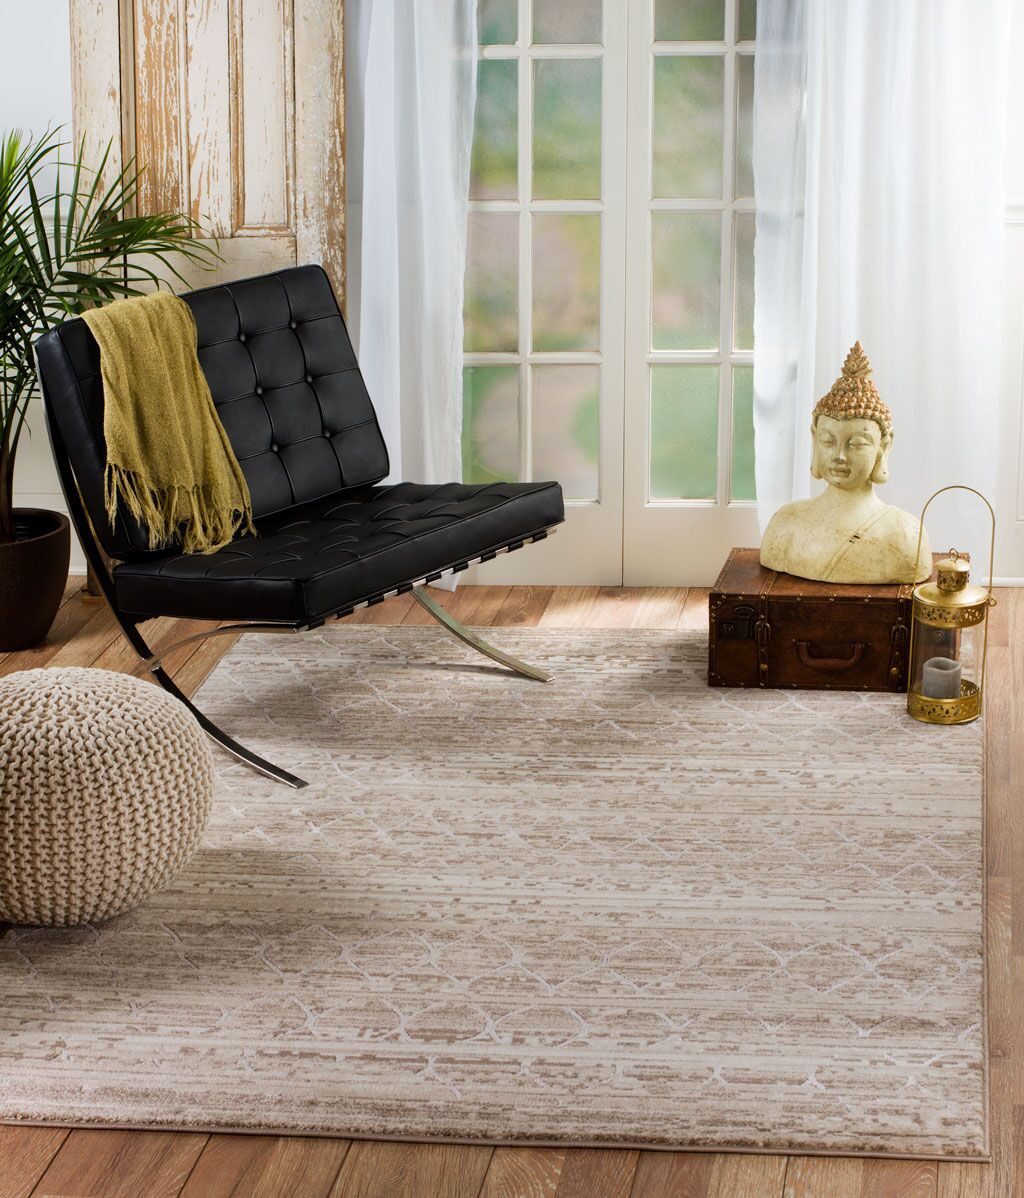 Gregory Glamour Taupe Area Rug Rug Size: 8' x 10' 6